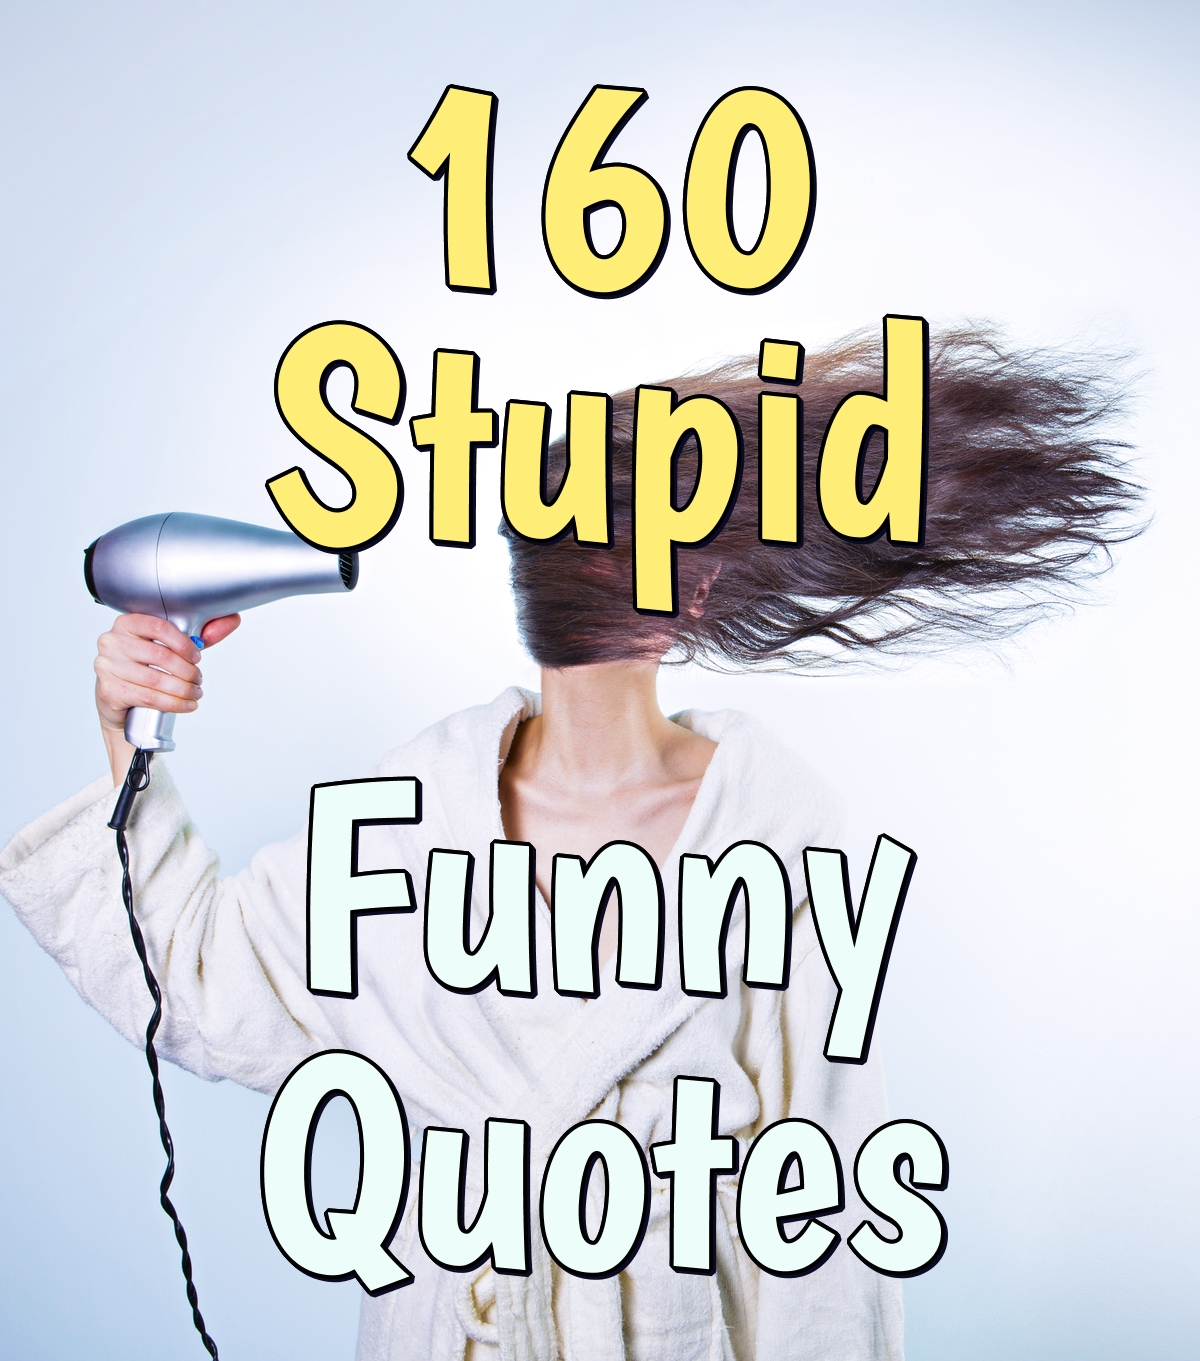 Stupid Funny Quotes - Cool Funny Quotes